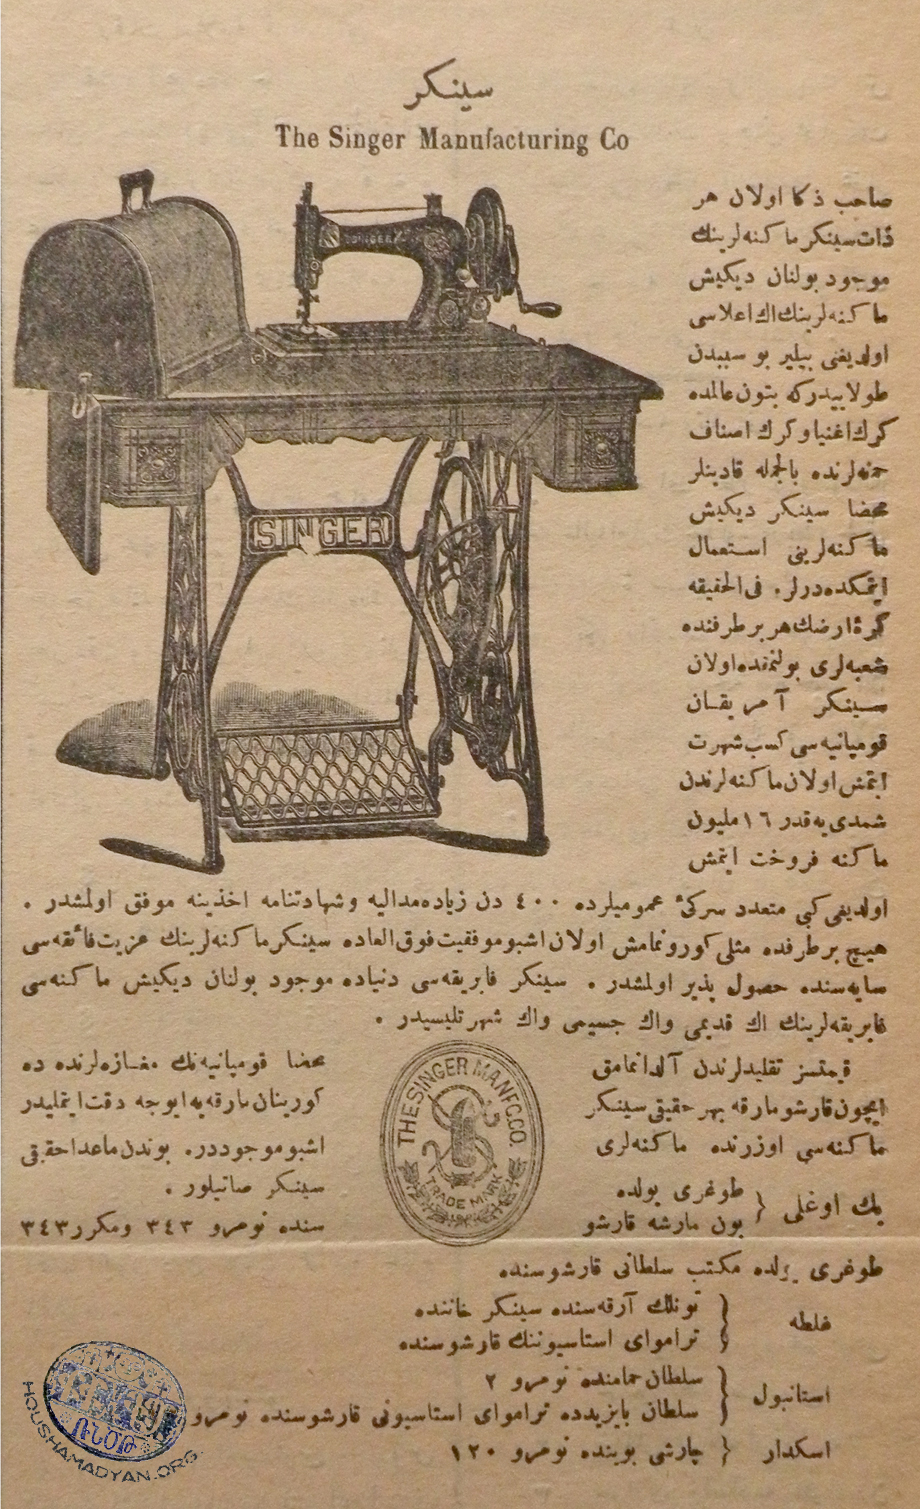 A German Singer sewing machine advertisement in an Ottoman-Turkish language periodical